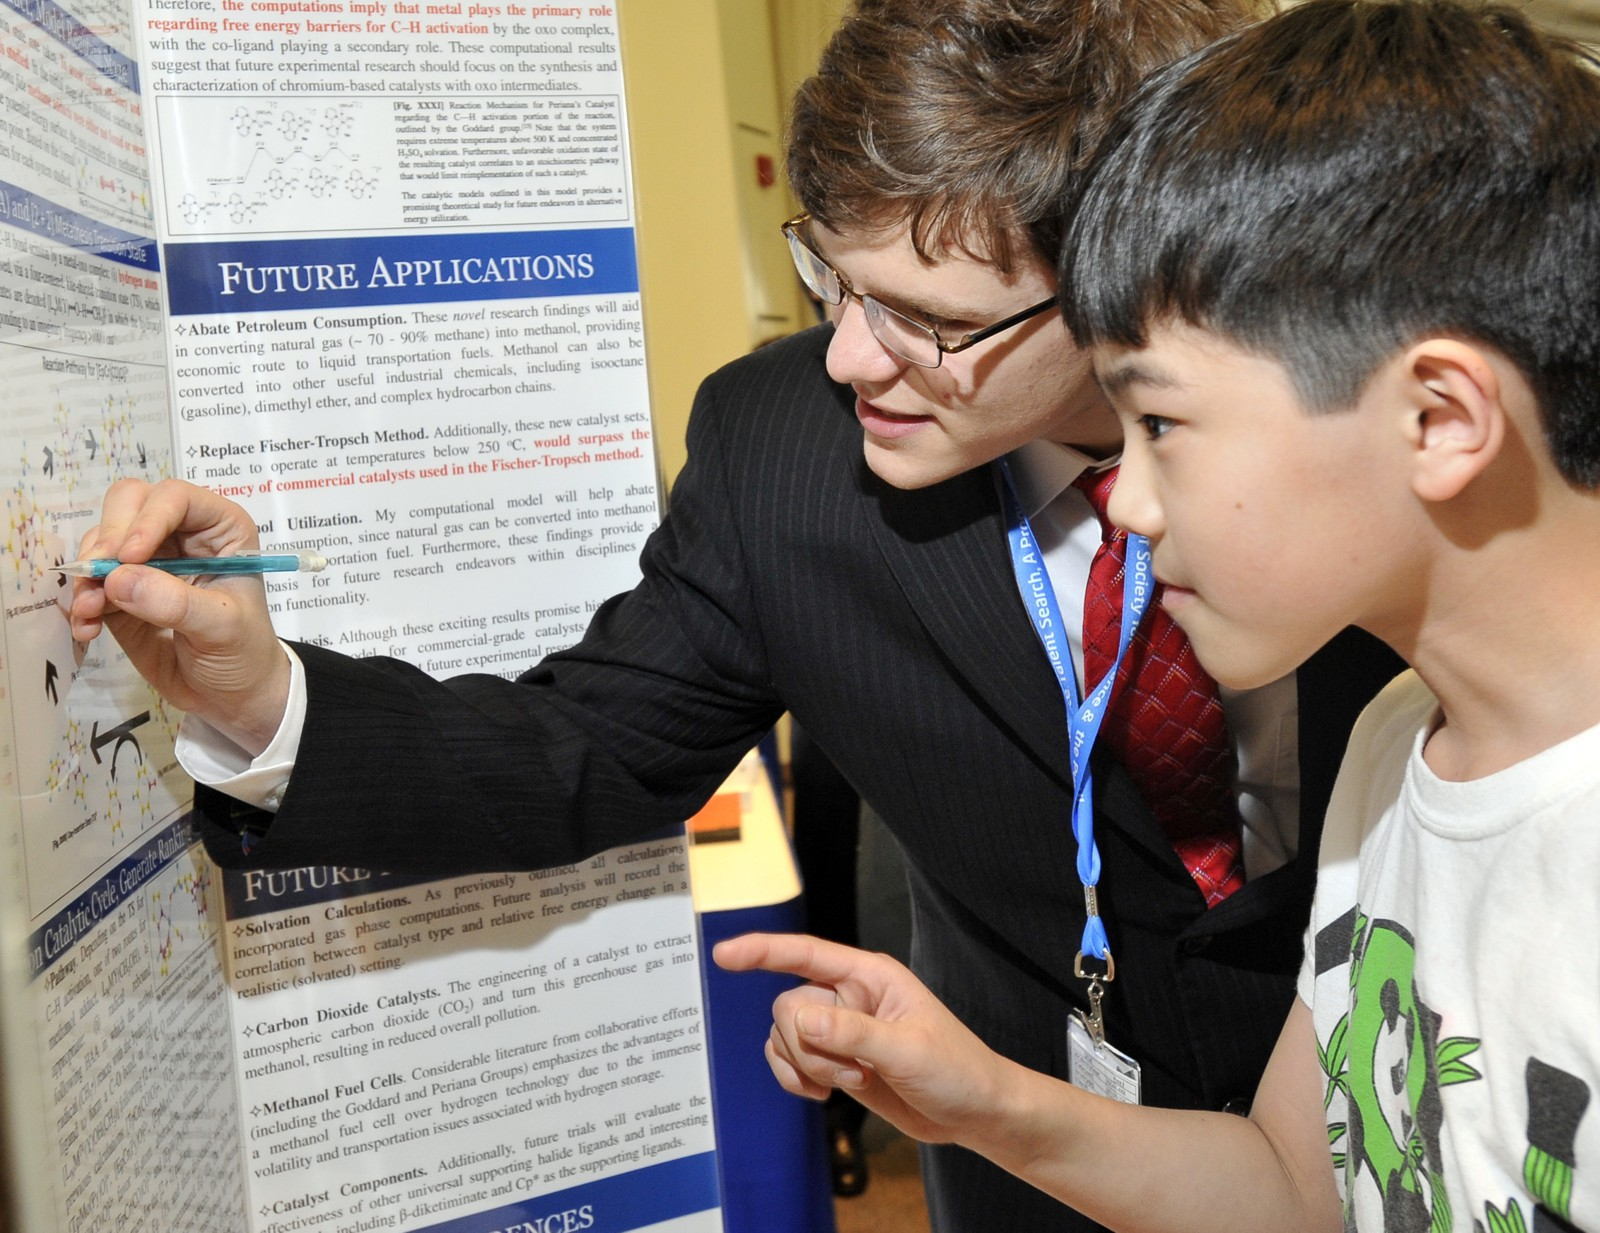 Kurtis Carsch, 17, of Plano, Tex. discusses with a curious young man his research, which could result in cleaner, lower-cost fuel.